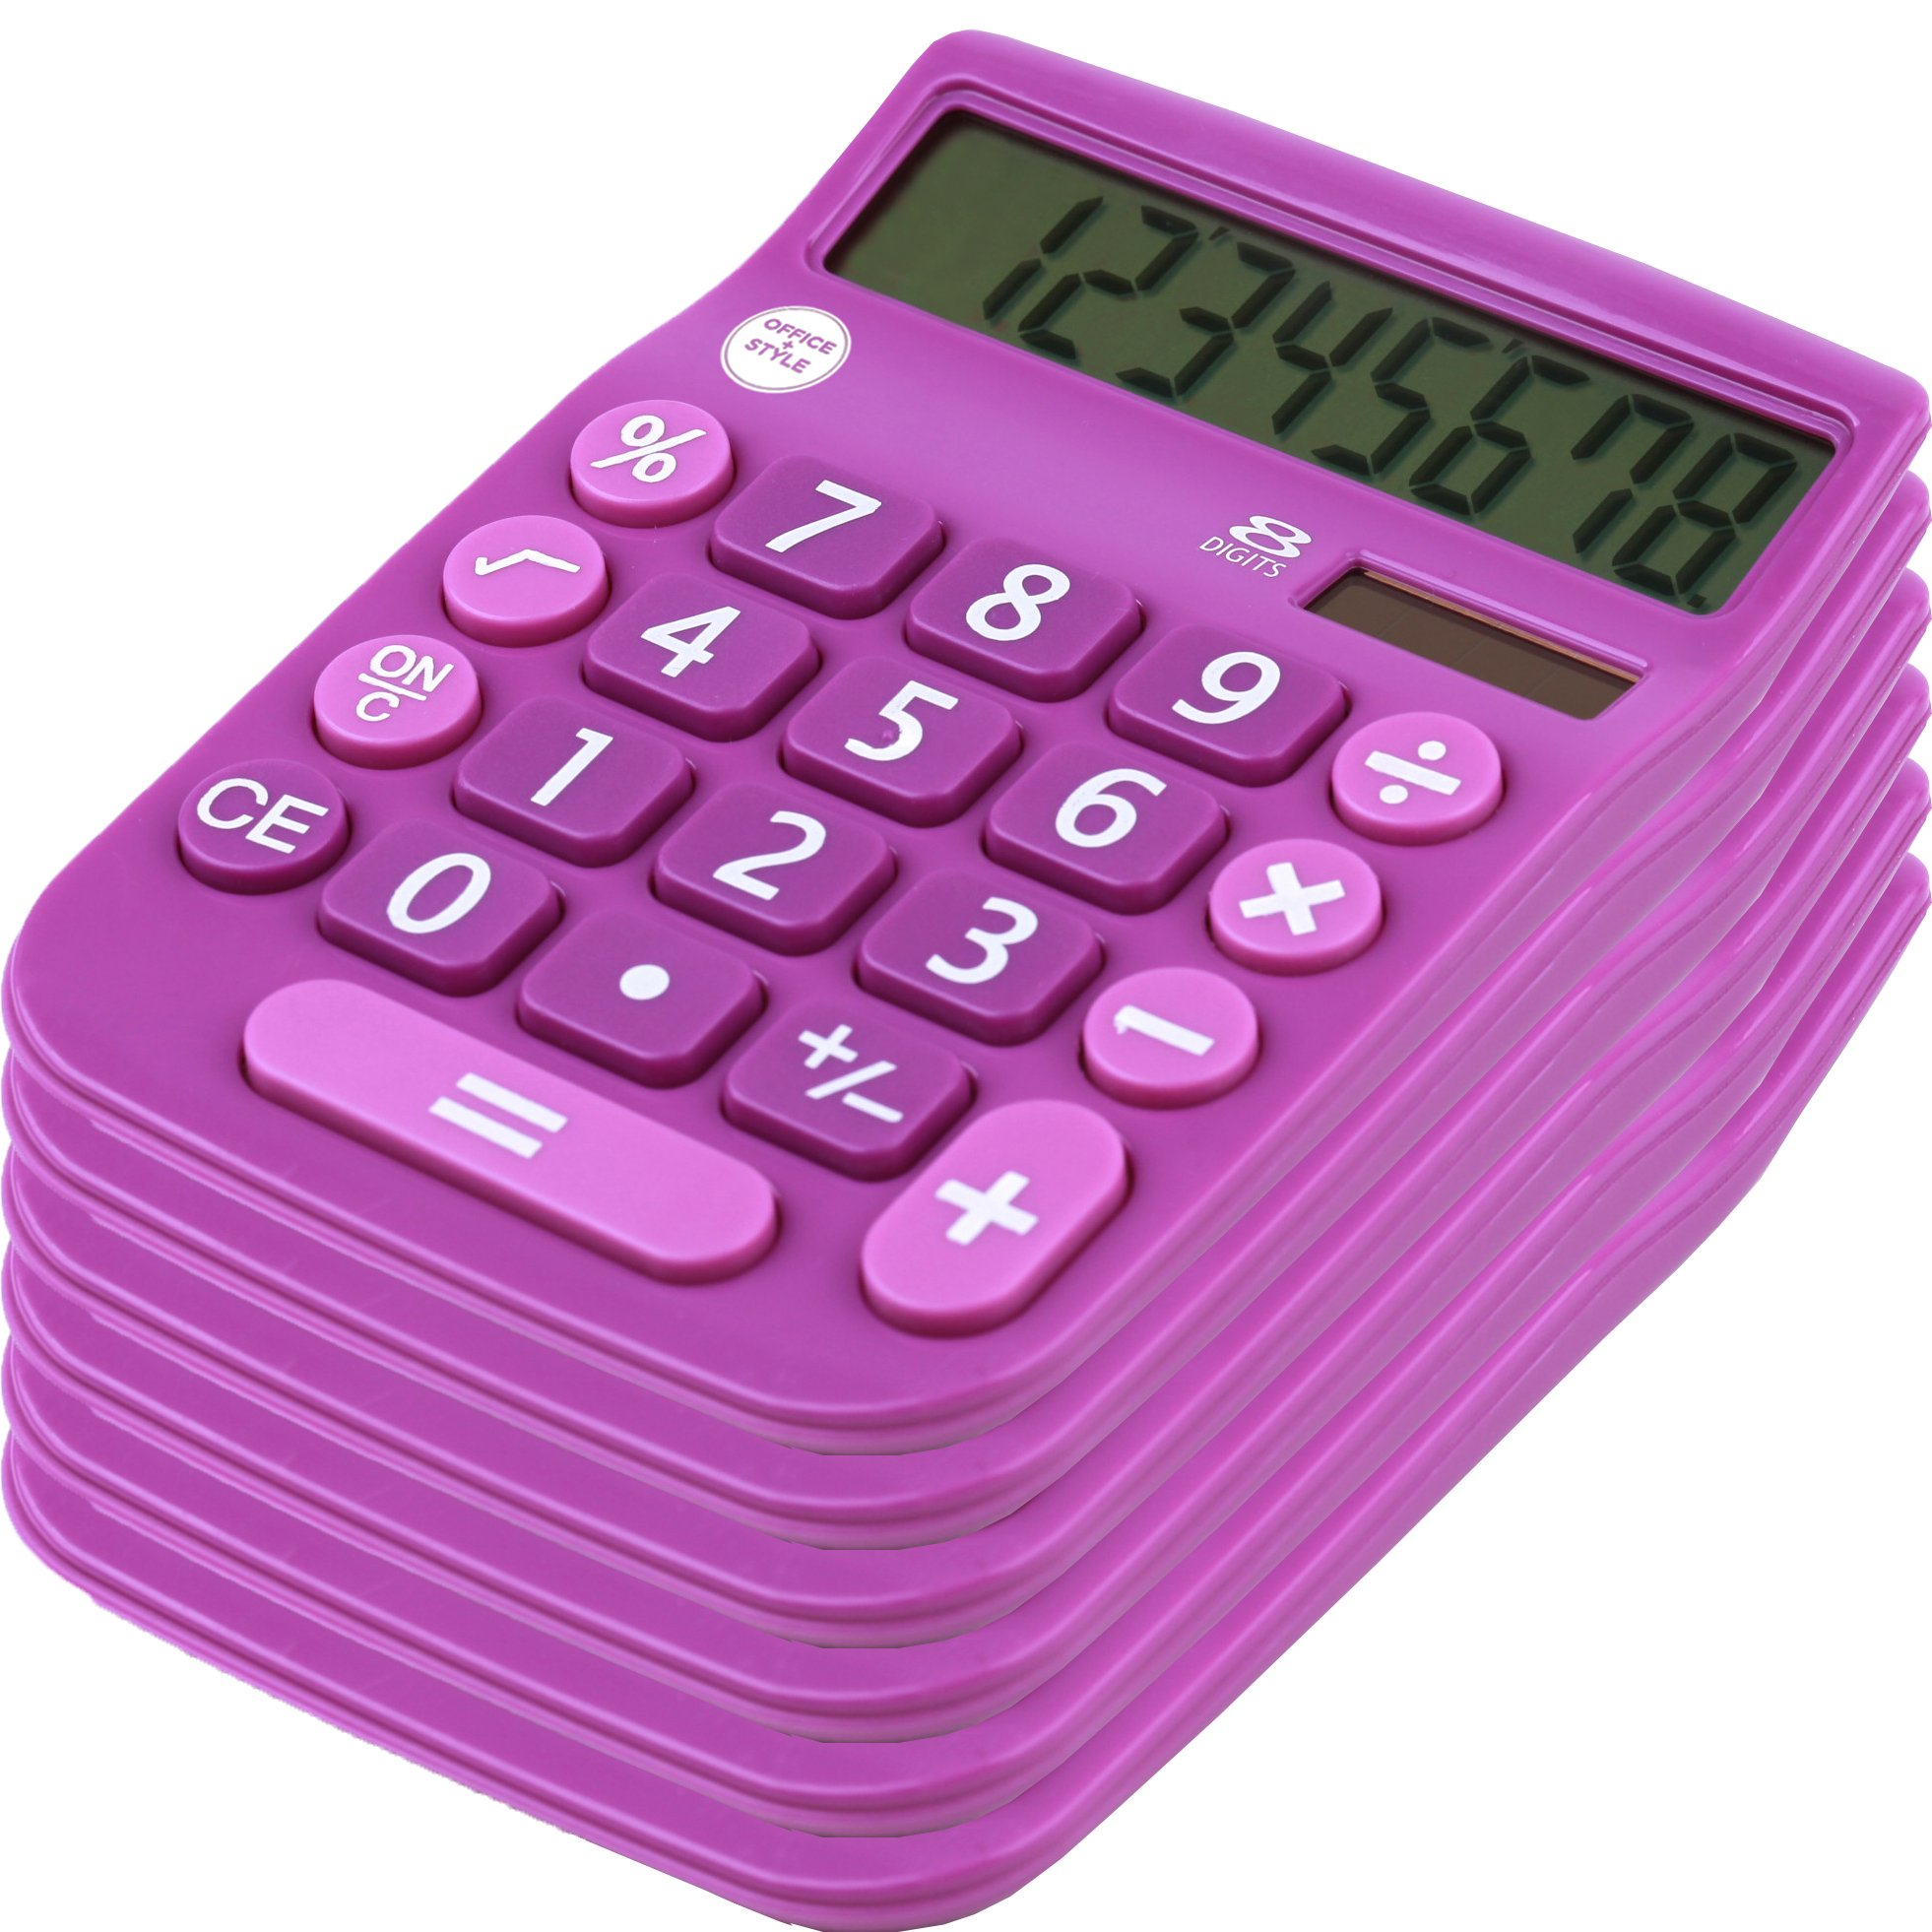 8 Digit Dual Powered Desktop Calculator,Large LCD Display, Lavender (Pack Of 6), by Office + Style by Office Style